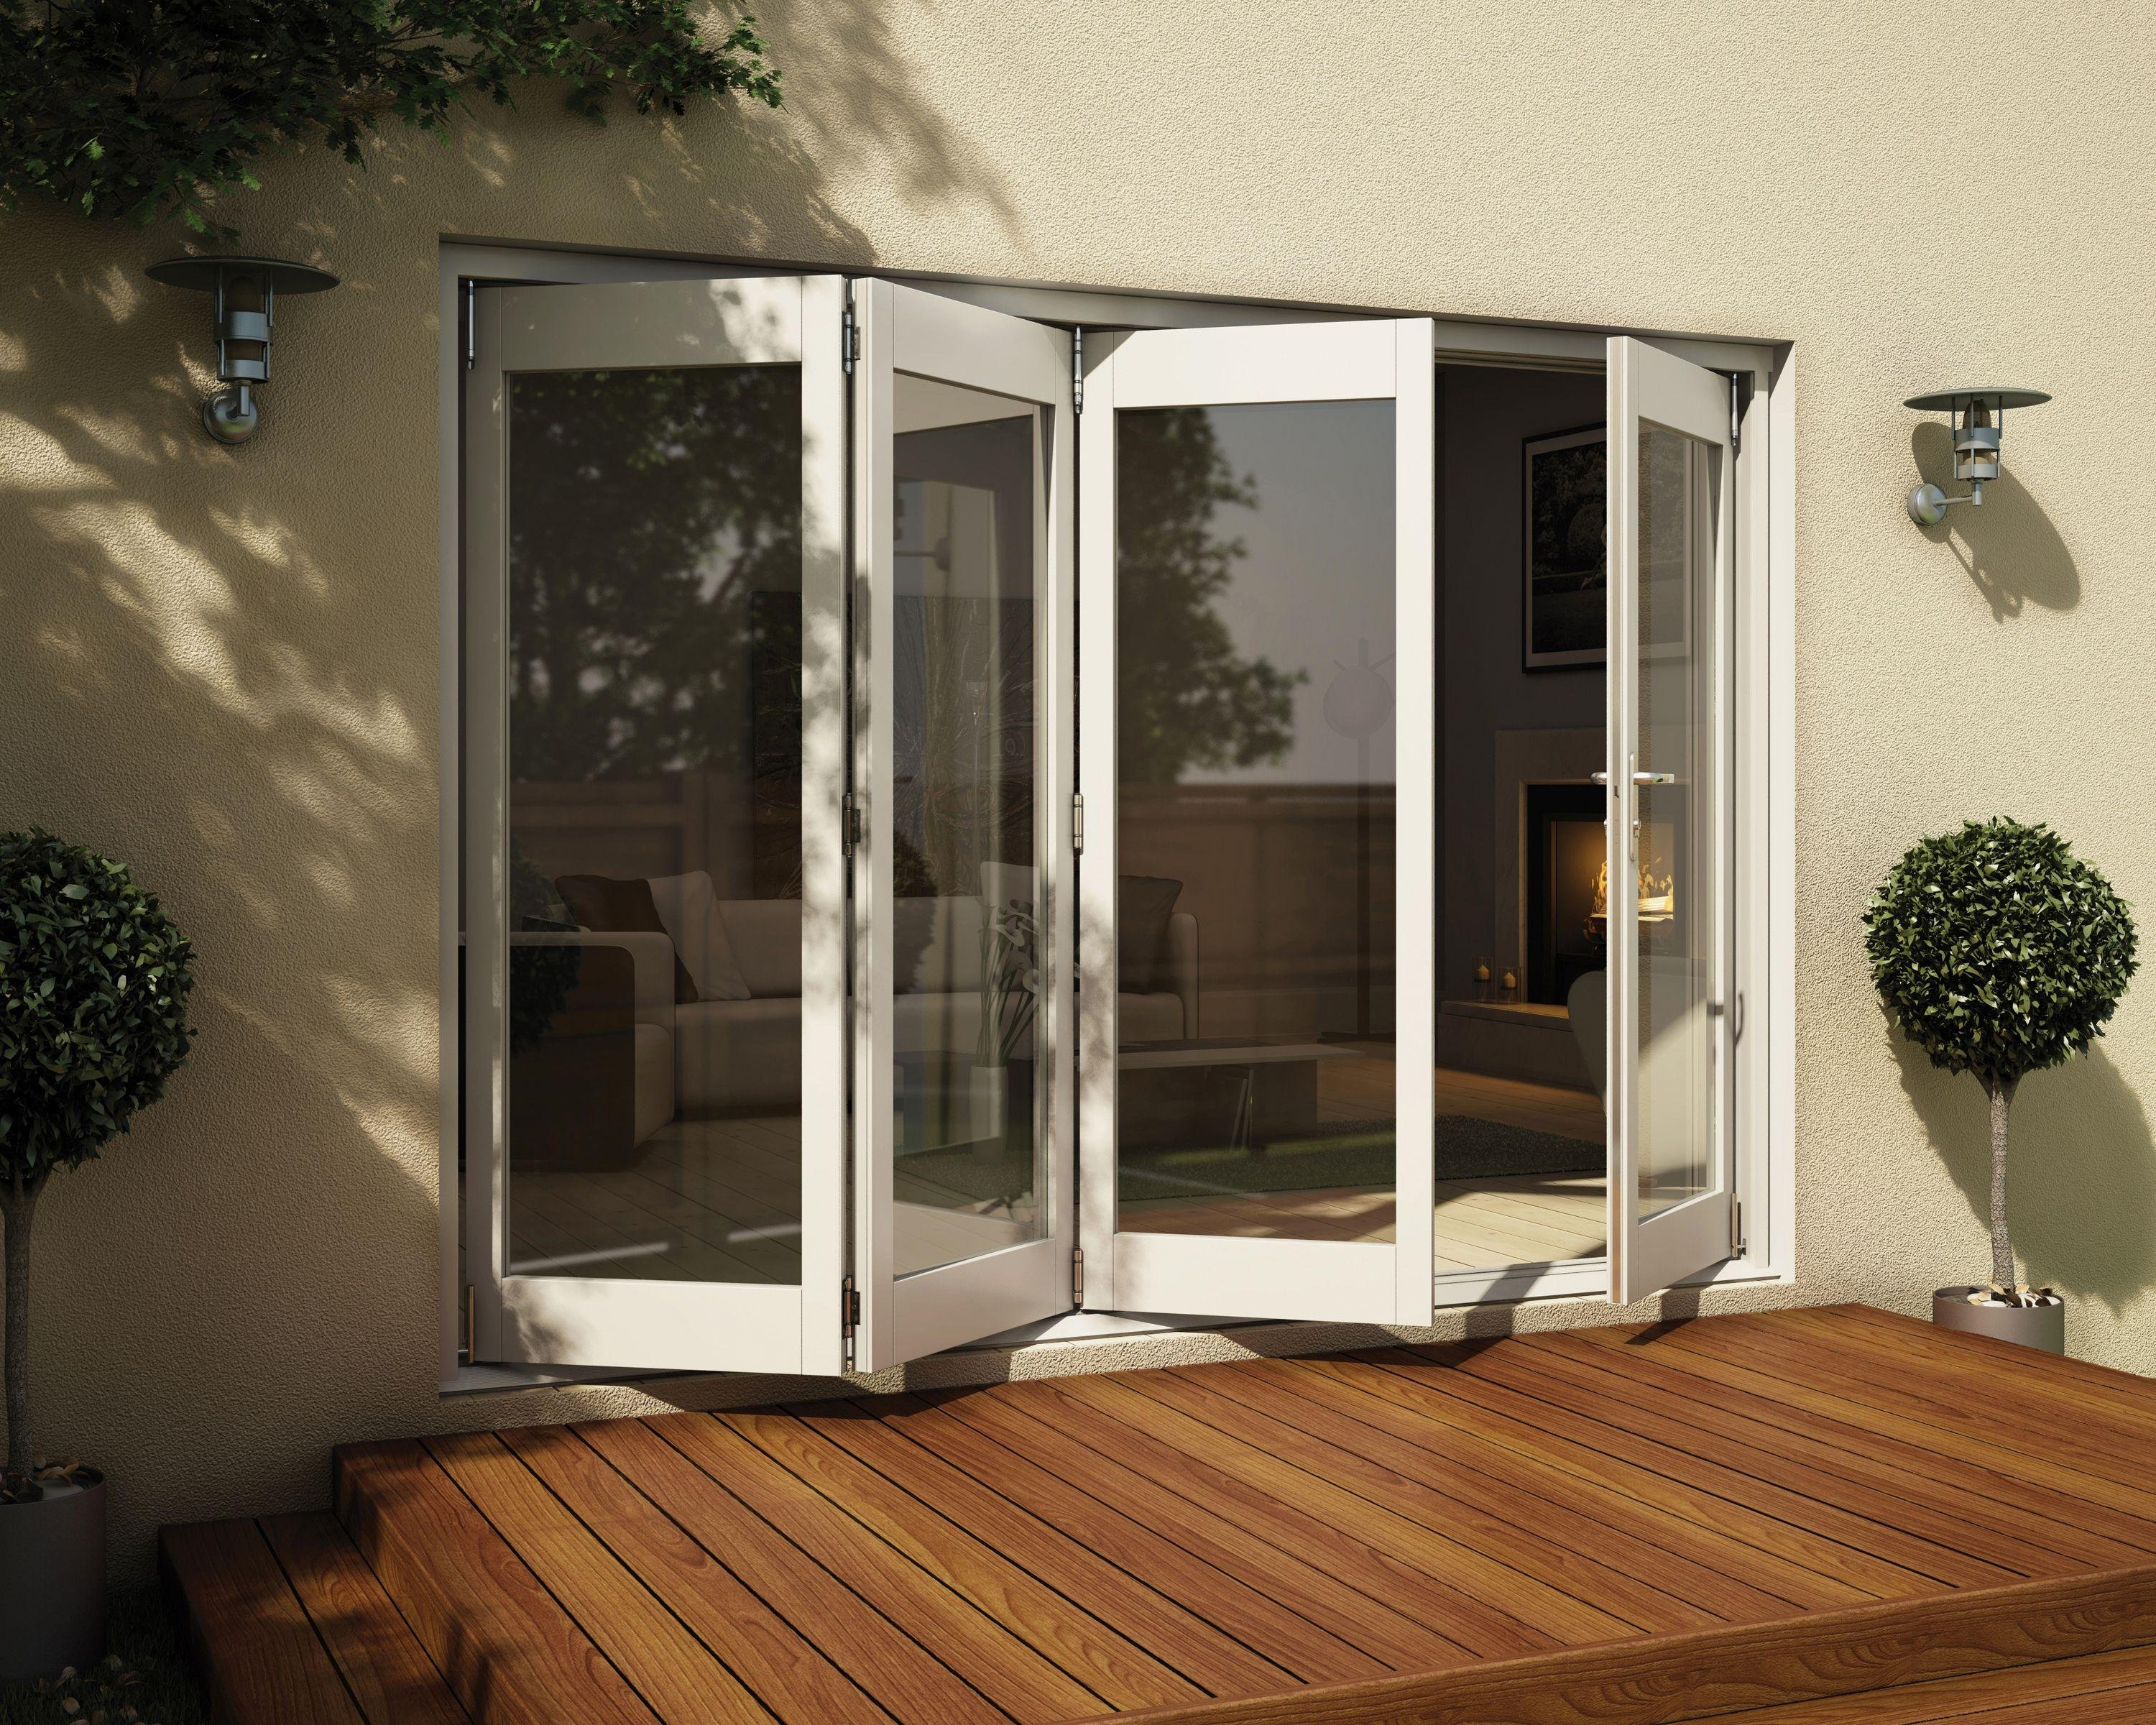 jeld-wen-white-timber-folding-patio-door-set-2105-x-3005